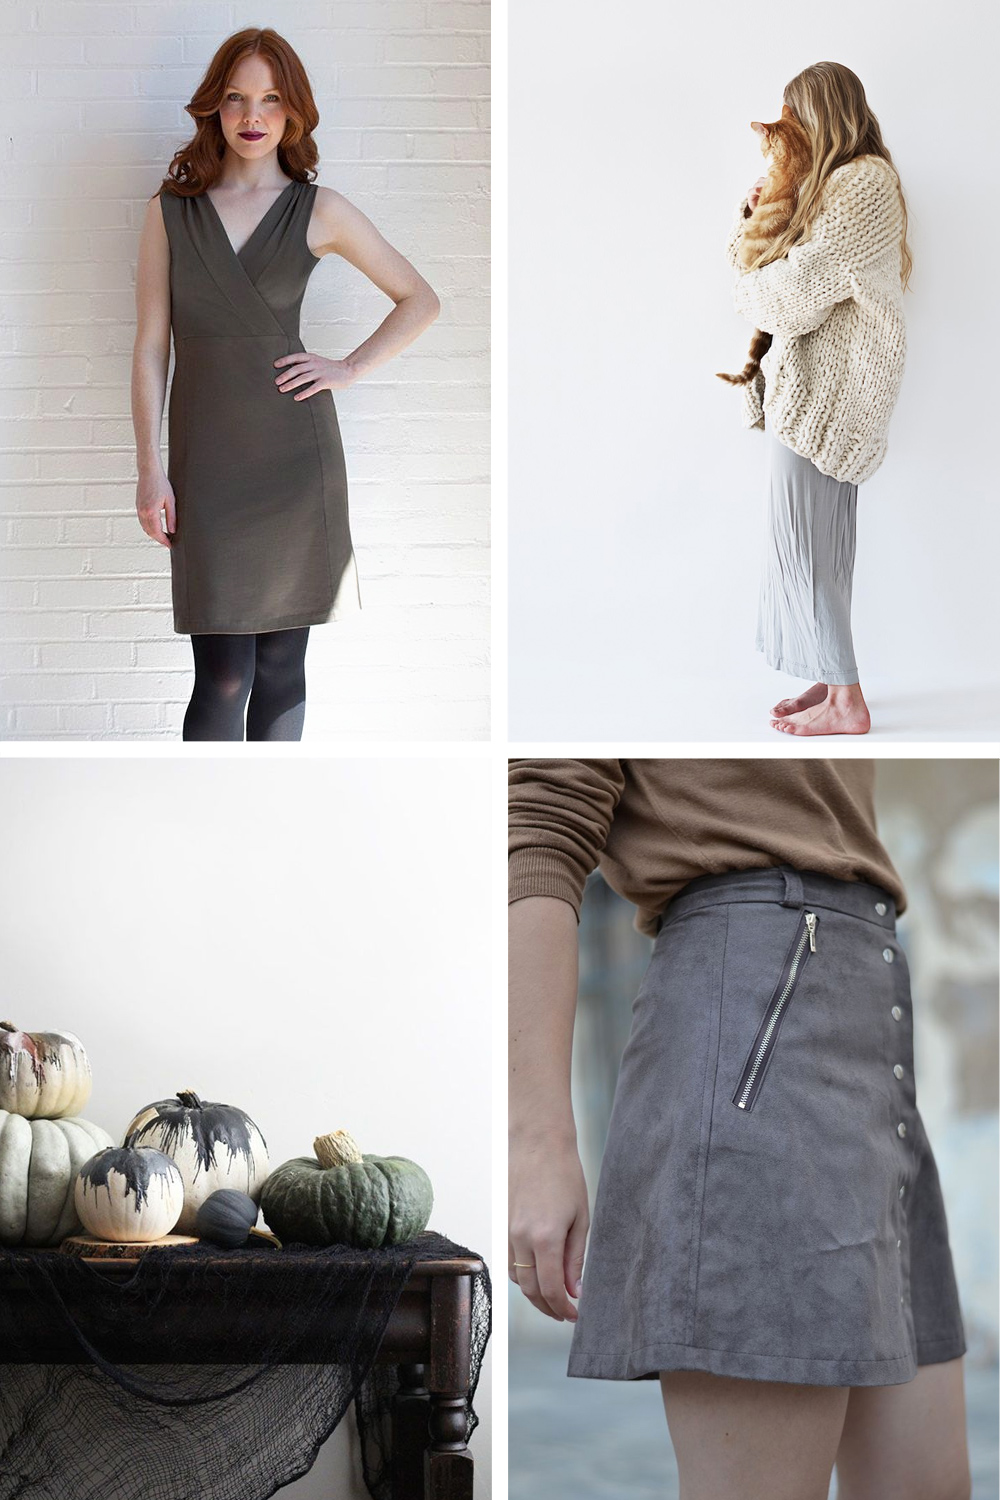 Clockwise from top right: Colette Wren Dress // Chunky Sweater  //  Pauline Alice Rosari Skirt // Waxed Pumpkins